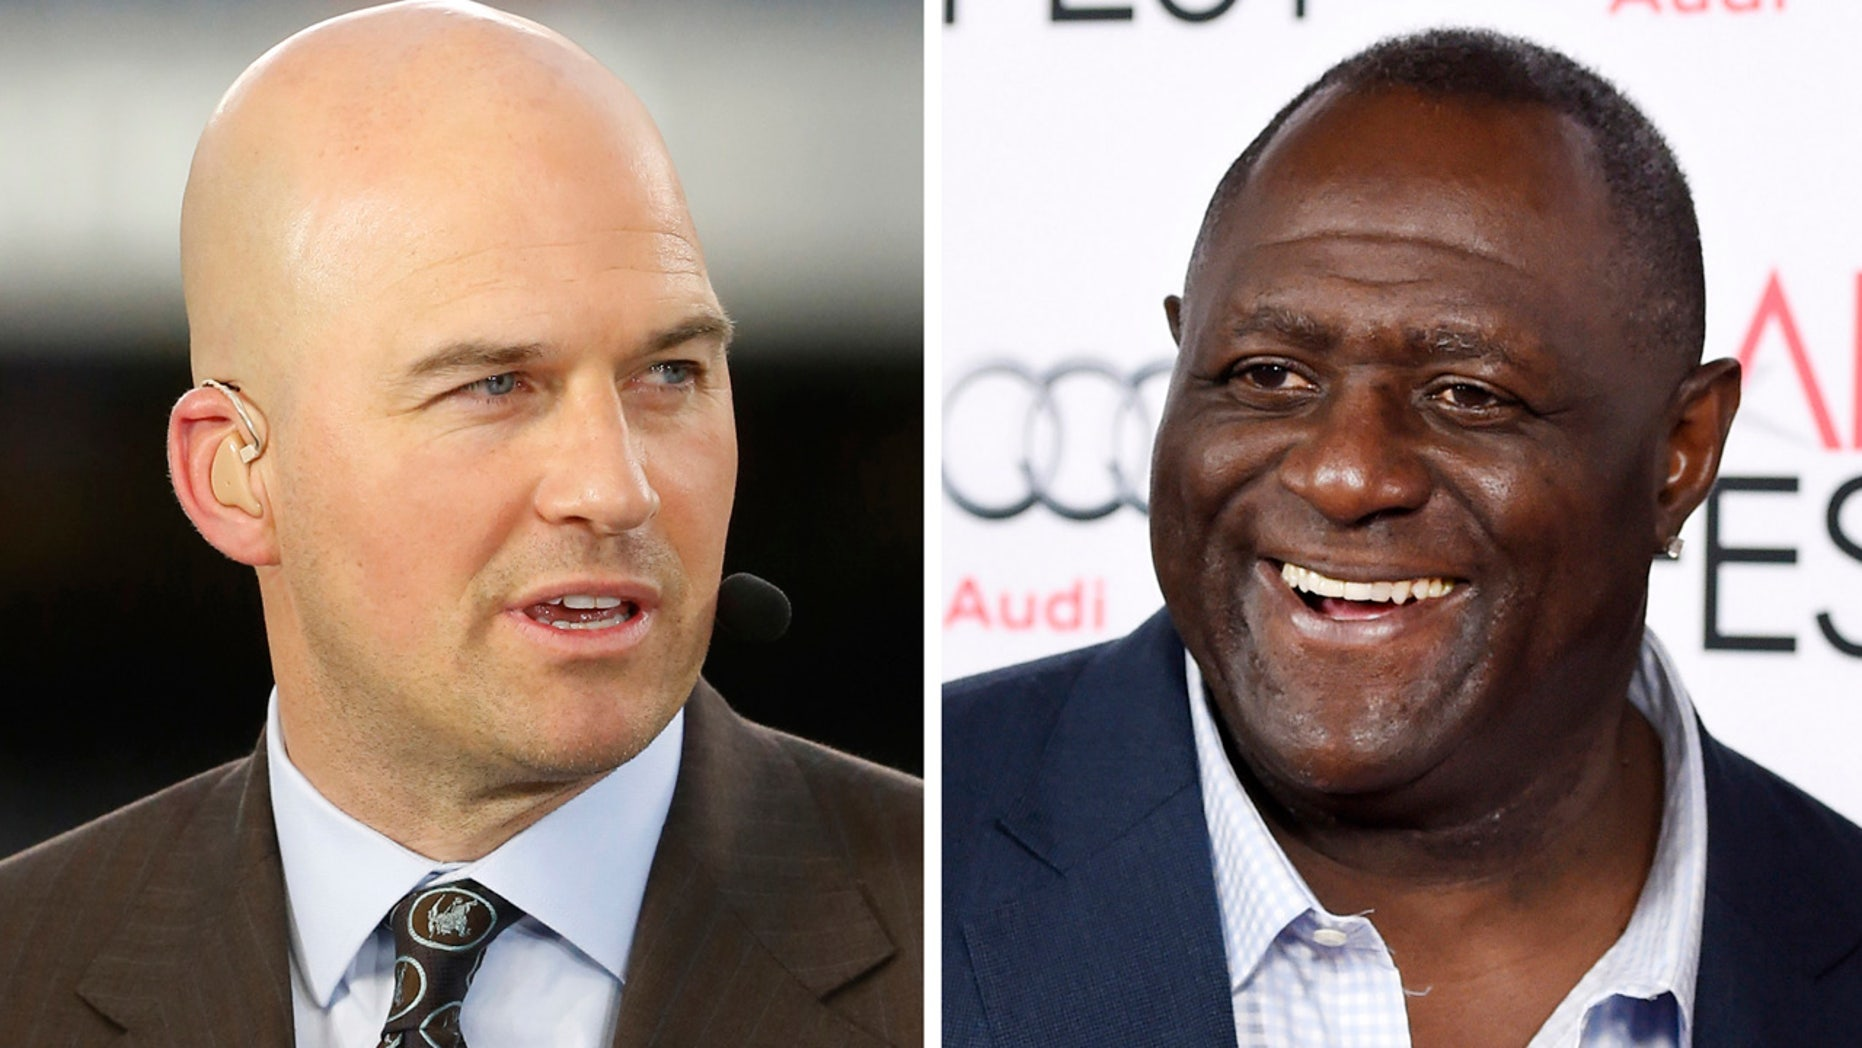 """Left: Matt Hasselbeck talks during ESPN's Monday Night Countdown. Right: Two-time Super Bowl champion Leonard Marshall smiles at a screening of the film """"Concussion."""""""